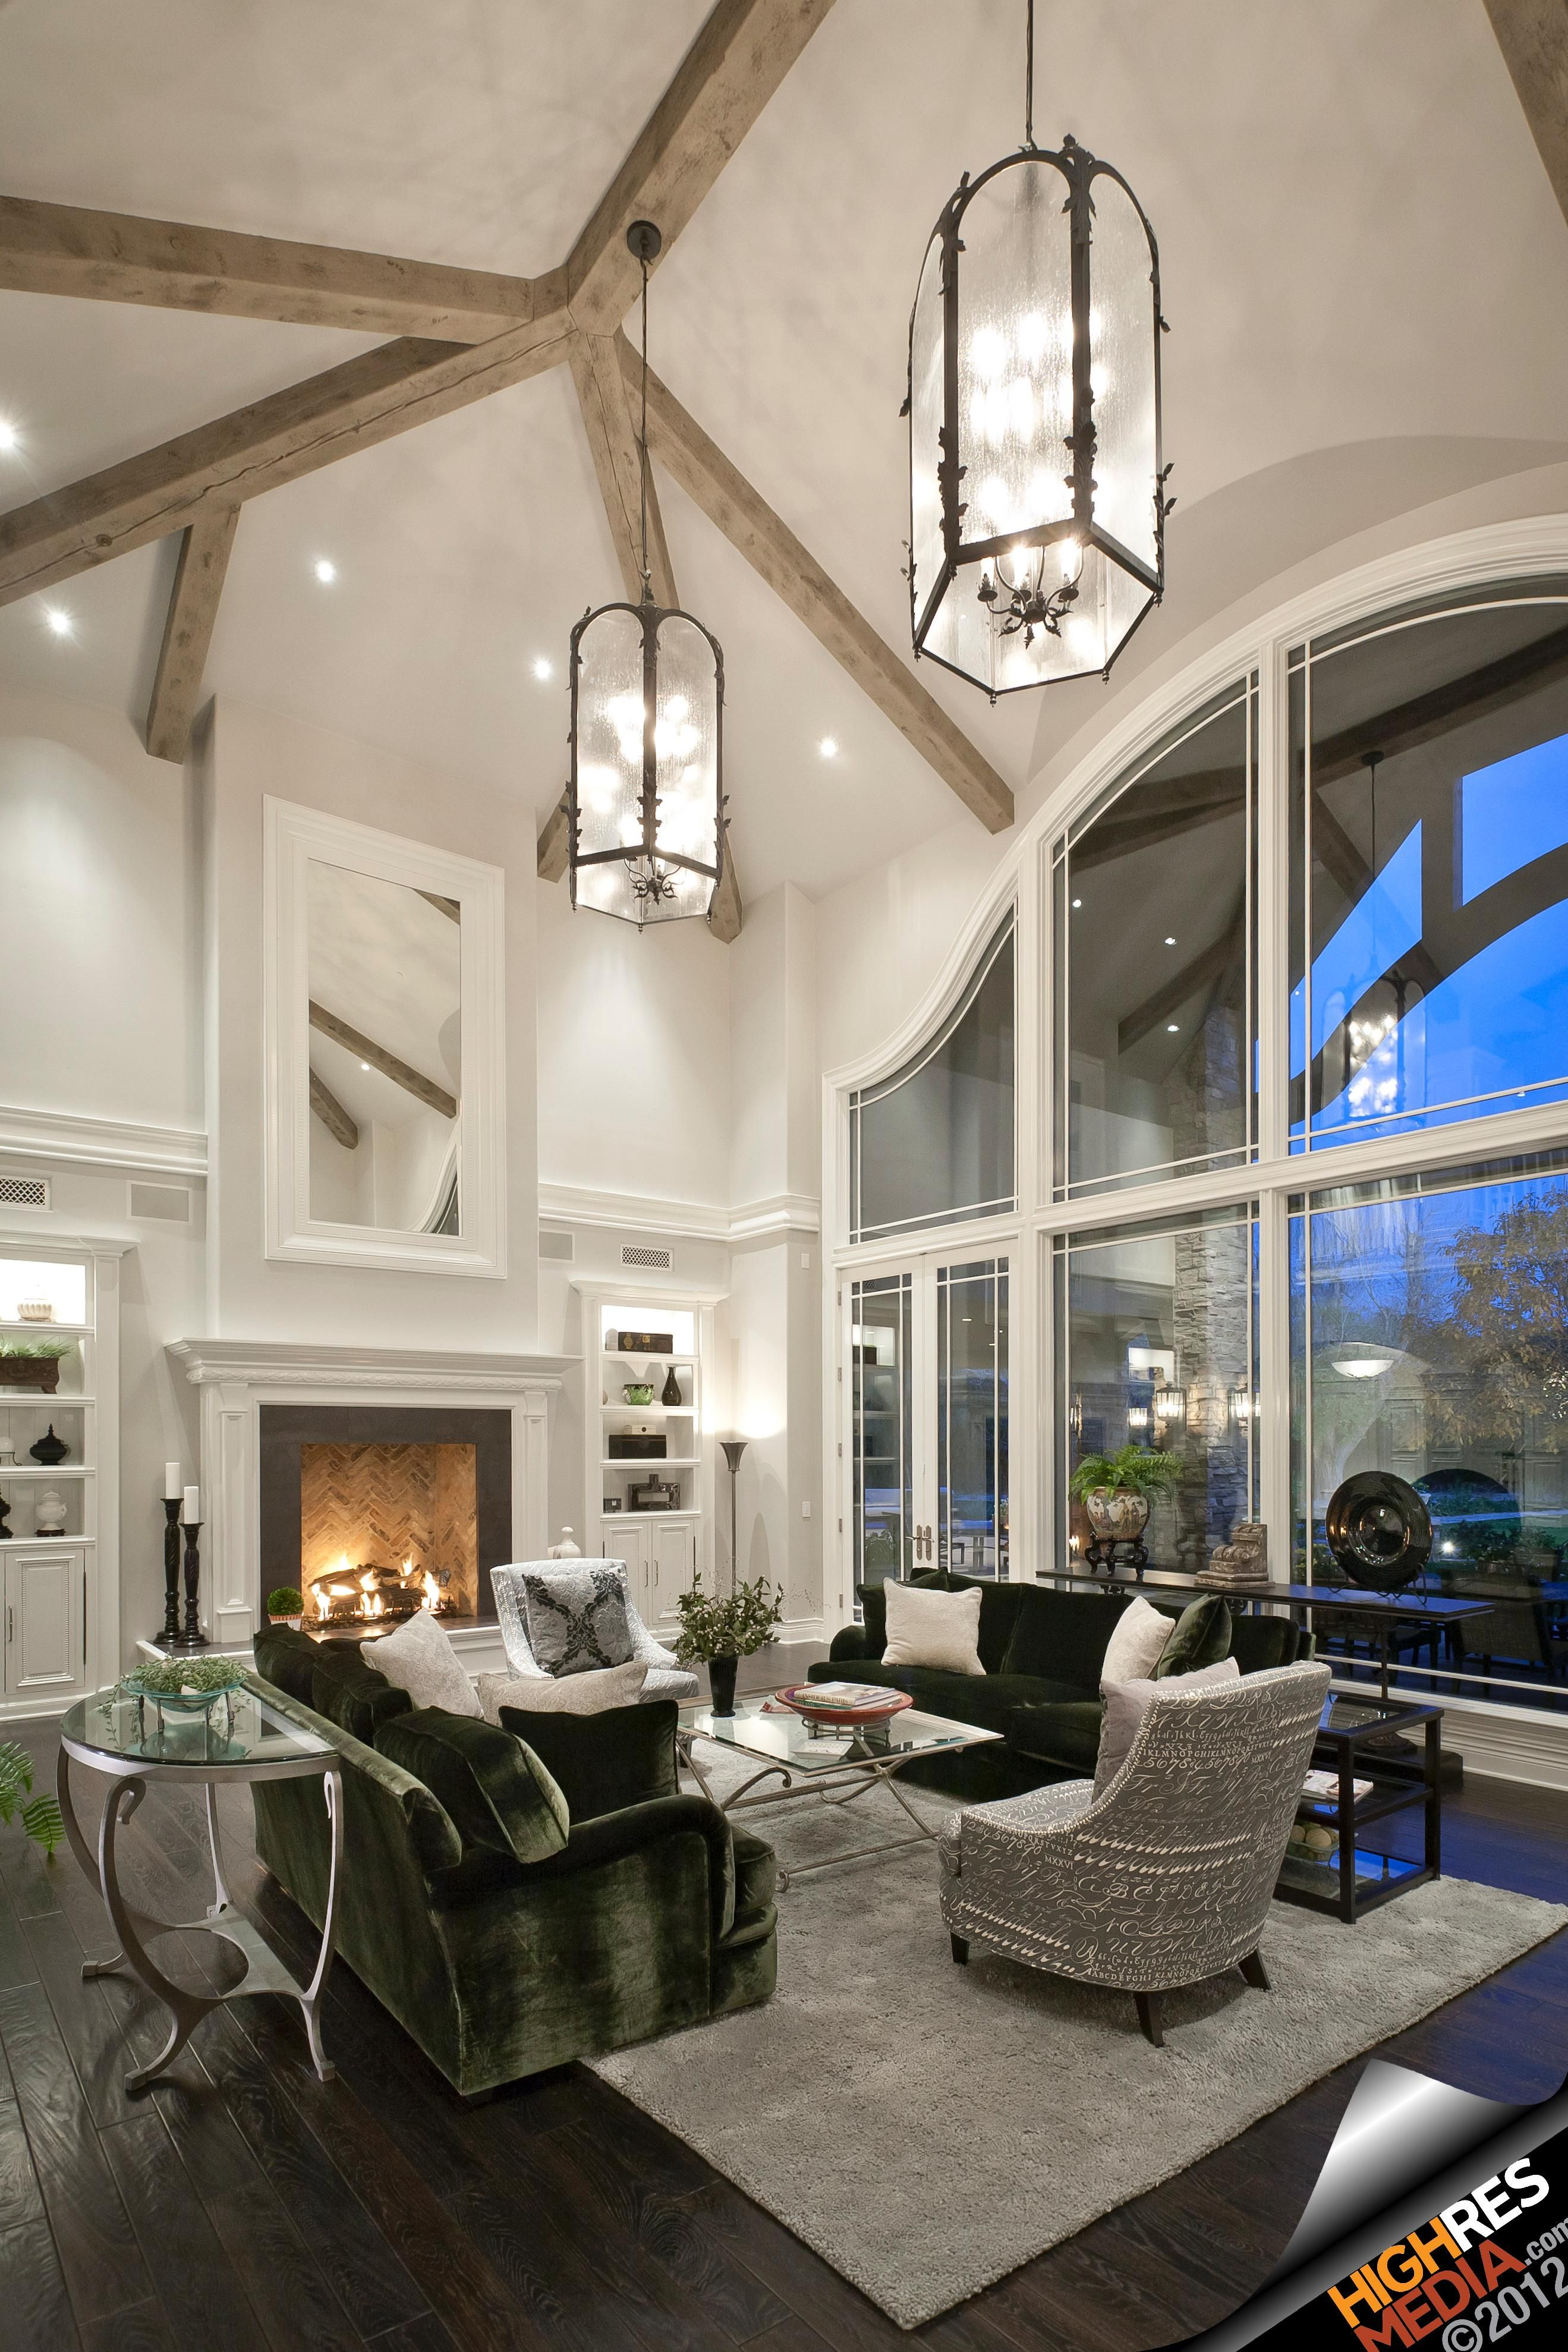 Incroyable Luxury Living Room With Fireplace   Scottsdale,AZ